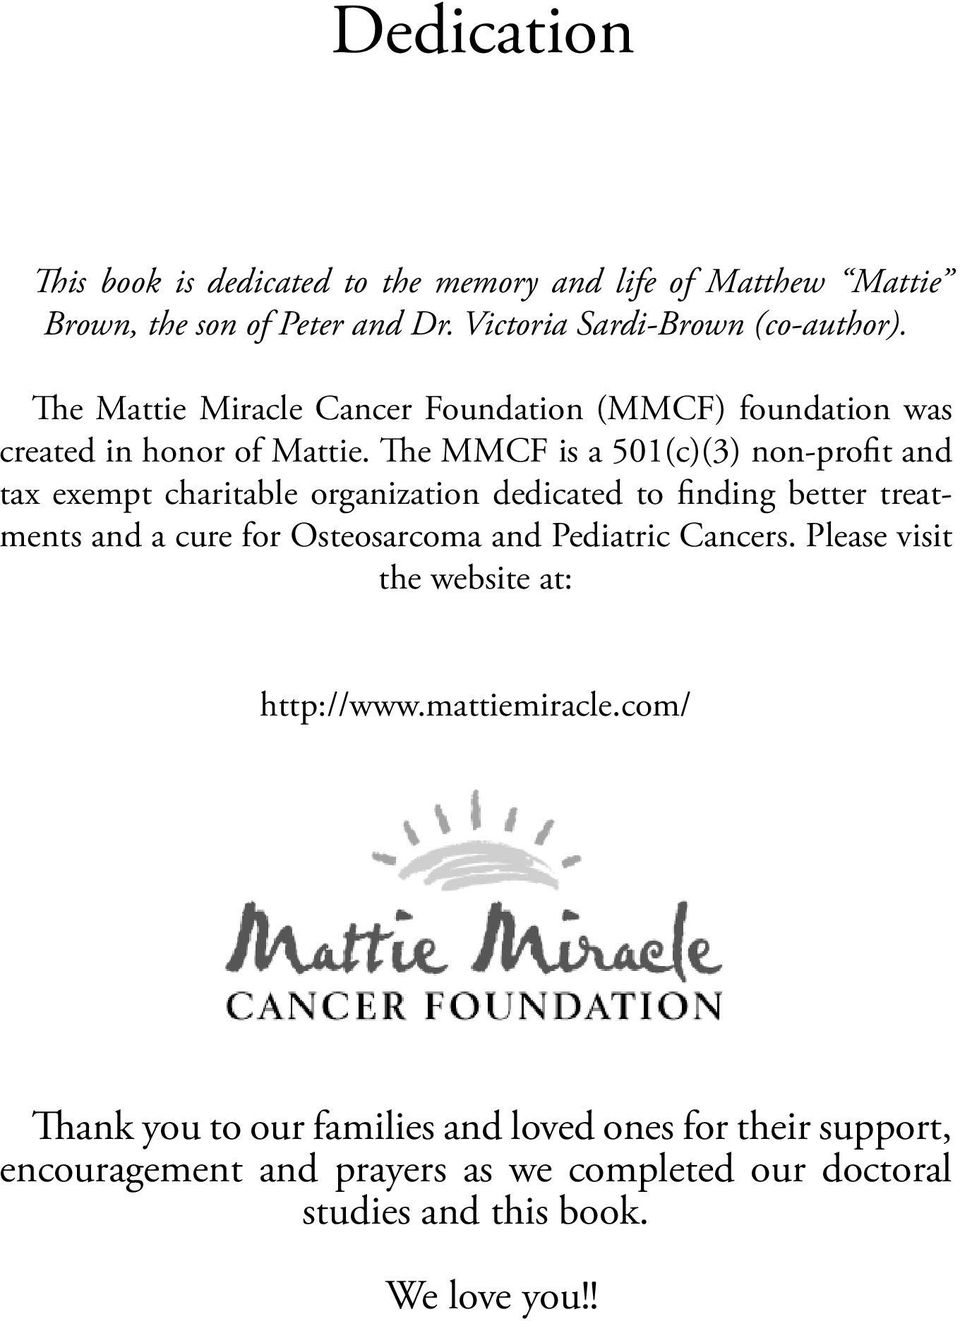 The MMCF is a 501(c)(3) non-profit and tax exempt charitable organization dedicated to finding better treatments and a cure for Osteosarcoma and